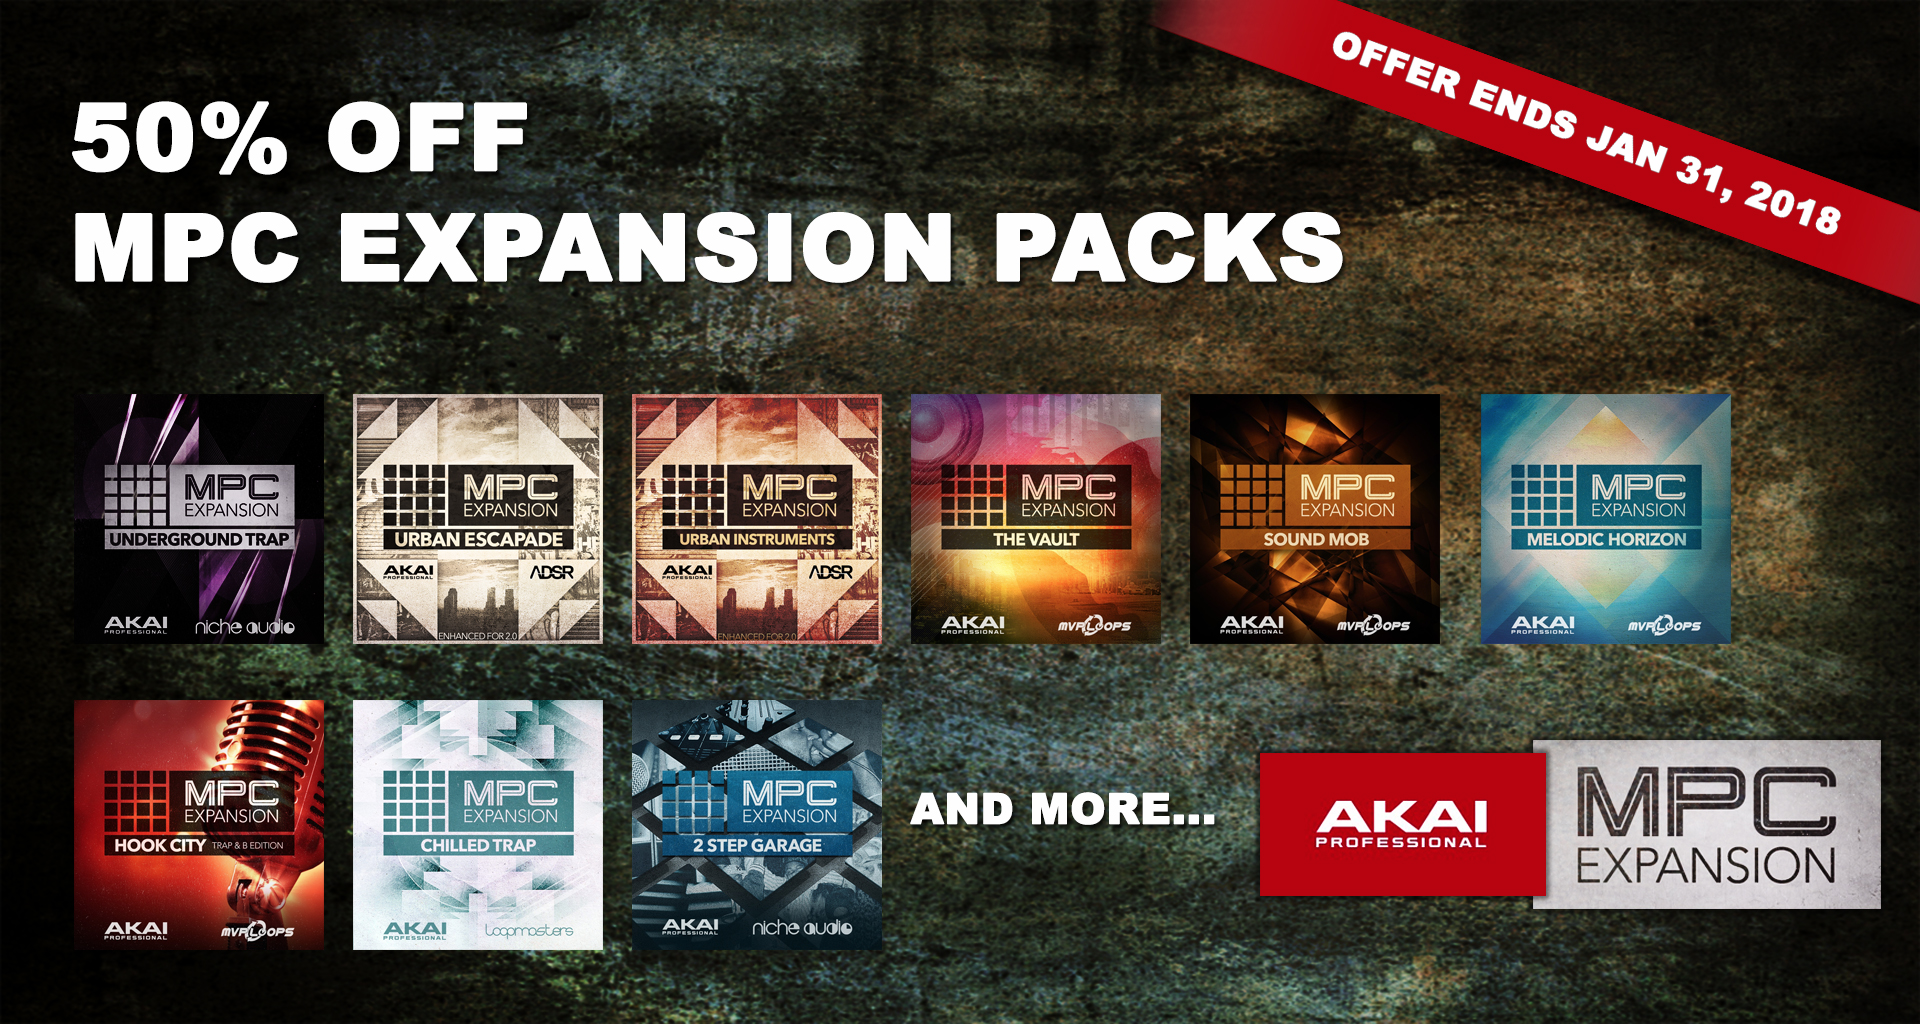 MPC Expansion Pack Sale